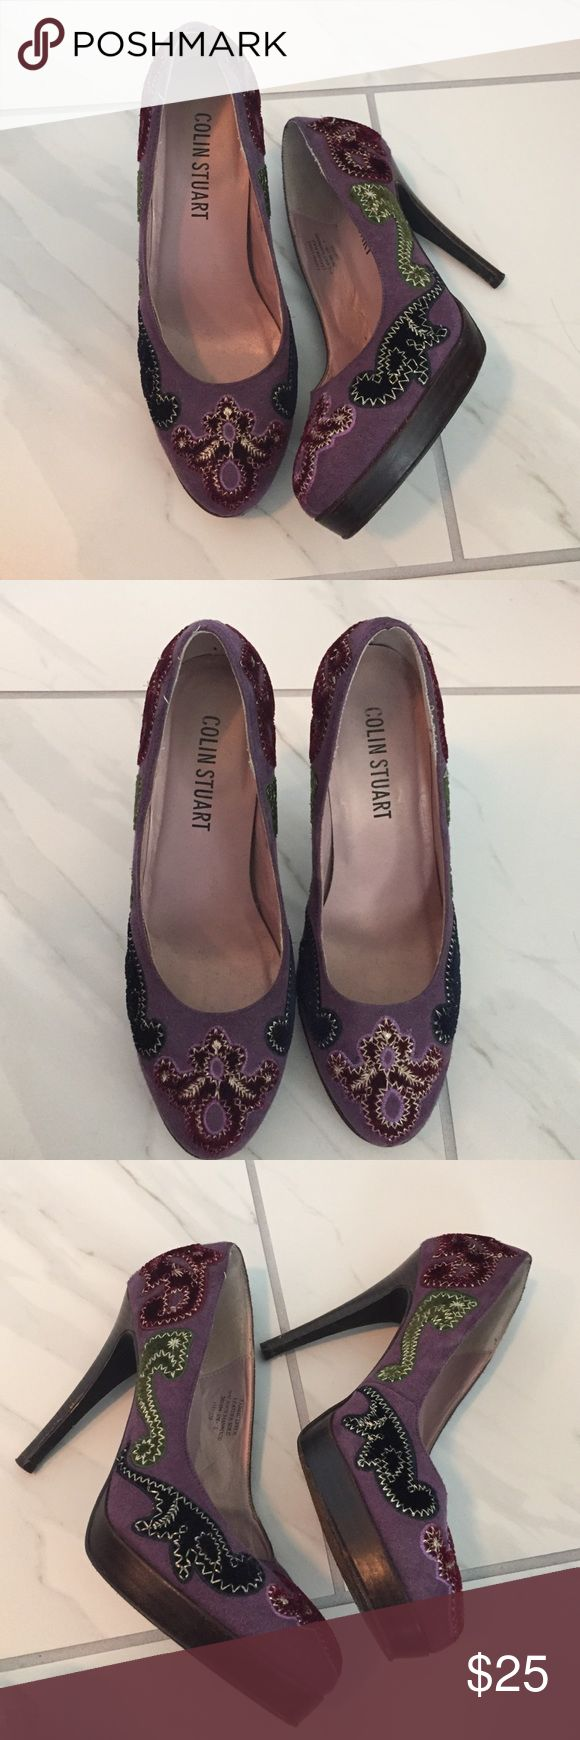 Colin Stuart (VS) Purple Heel with Adorable Detail Purchased from Victoria Secret for $60, only worn a few times. 4 inch heel. Colin Stuart Shoes Heels